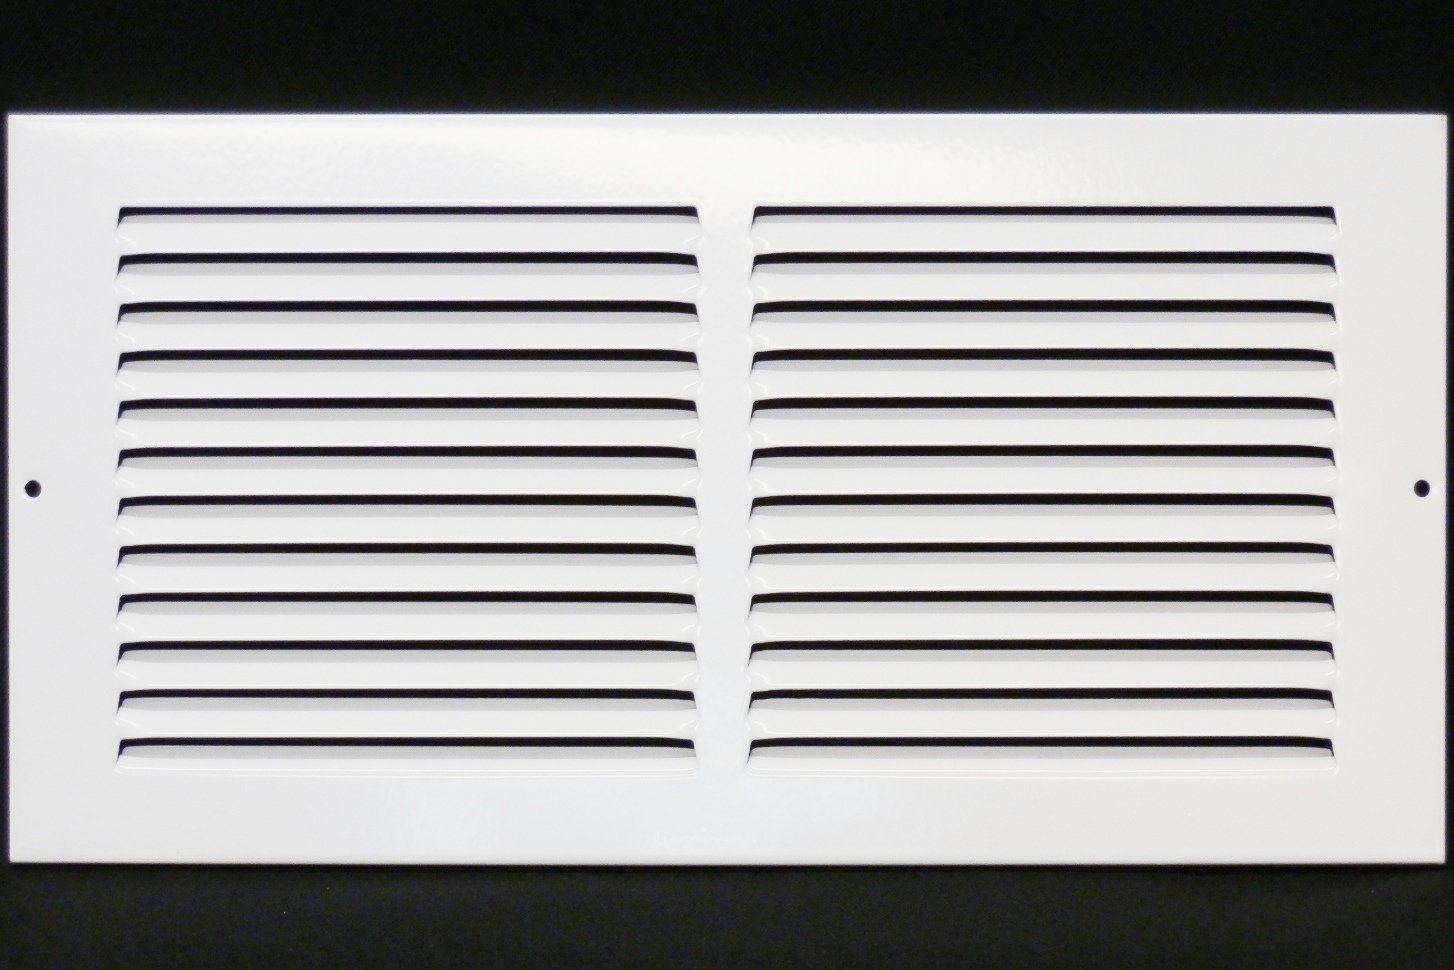 14''w X 8''h Steel Return Air Grilles - Sidewall and Cieling - HVAC DUCT COVER - White [Outer Dimensions: 15.75''w X 9.75''h]